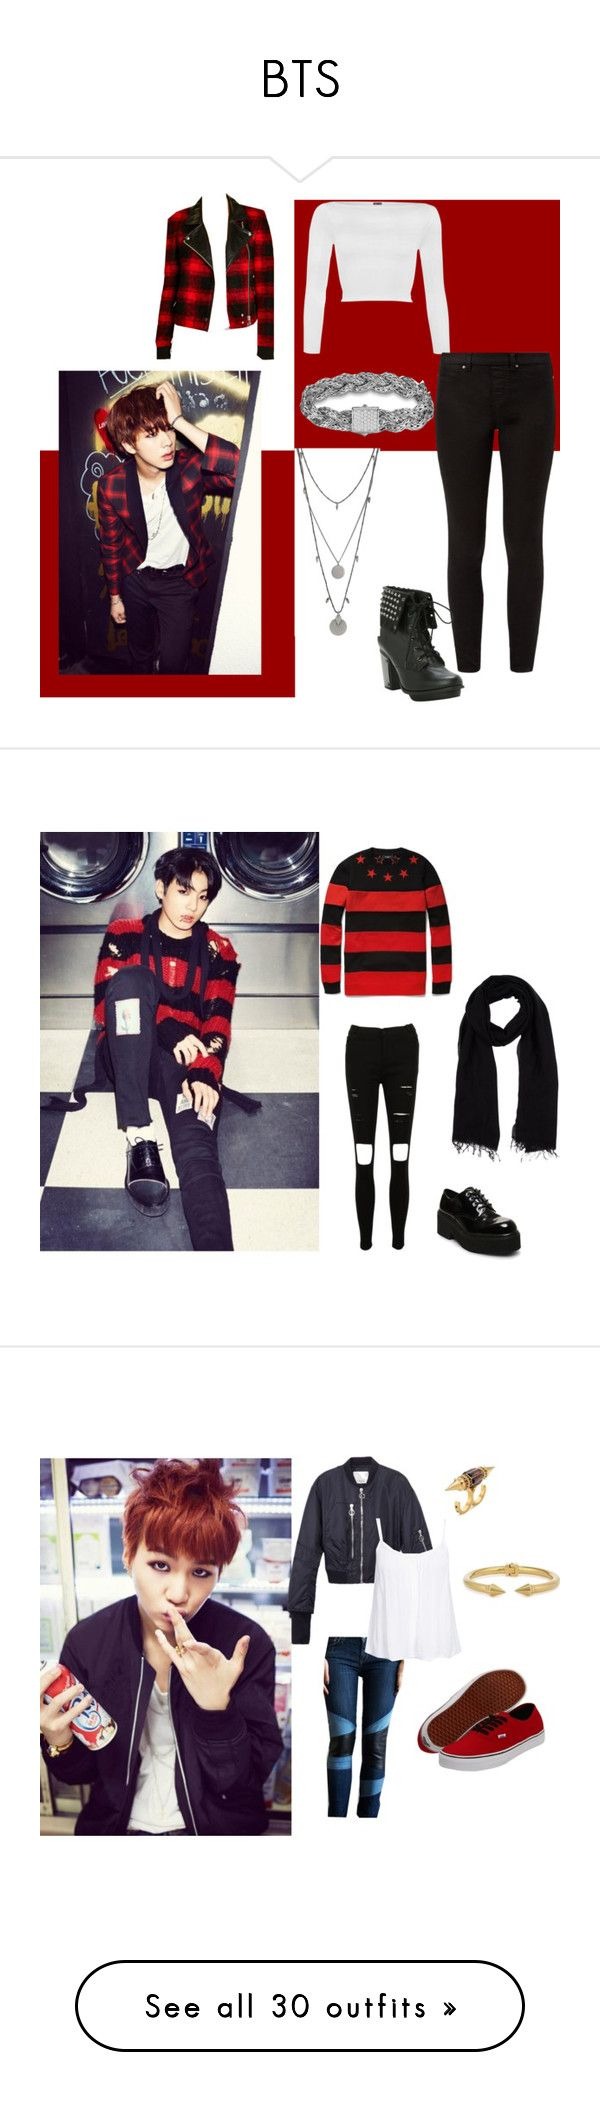 """""""BTS"""" by lovelyseoul784 on Polyvore featuring WearAll, Paige Denim, Vince Camuto, John Hardy, Givenchy, Blue Les Copains, Steve Madden, 3.1 Phillip Lim, Vita Fede and New Look"""